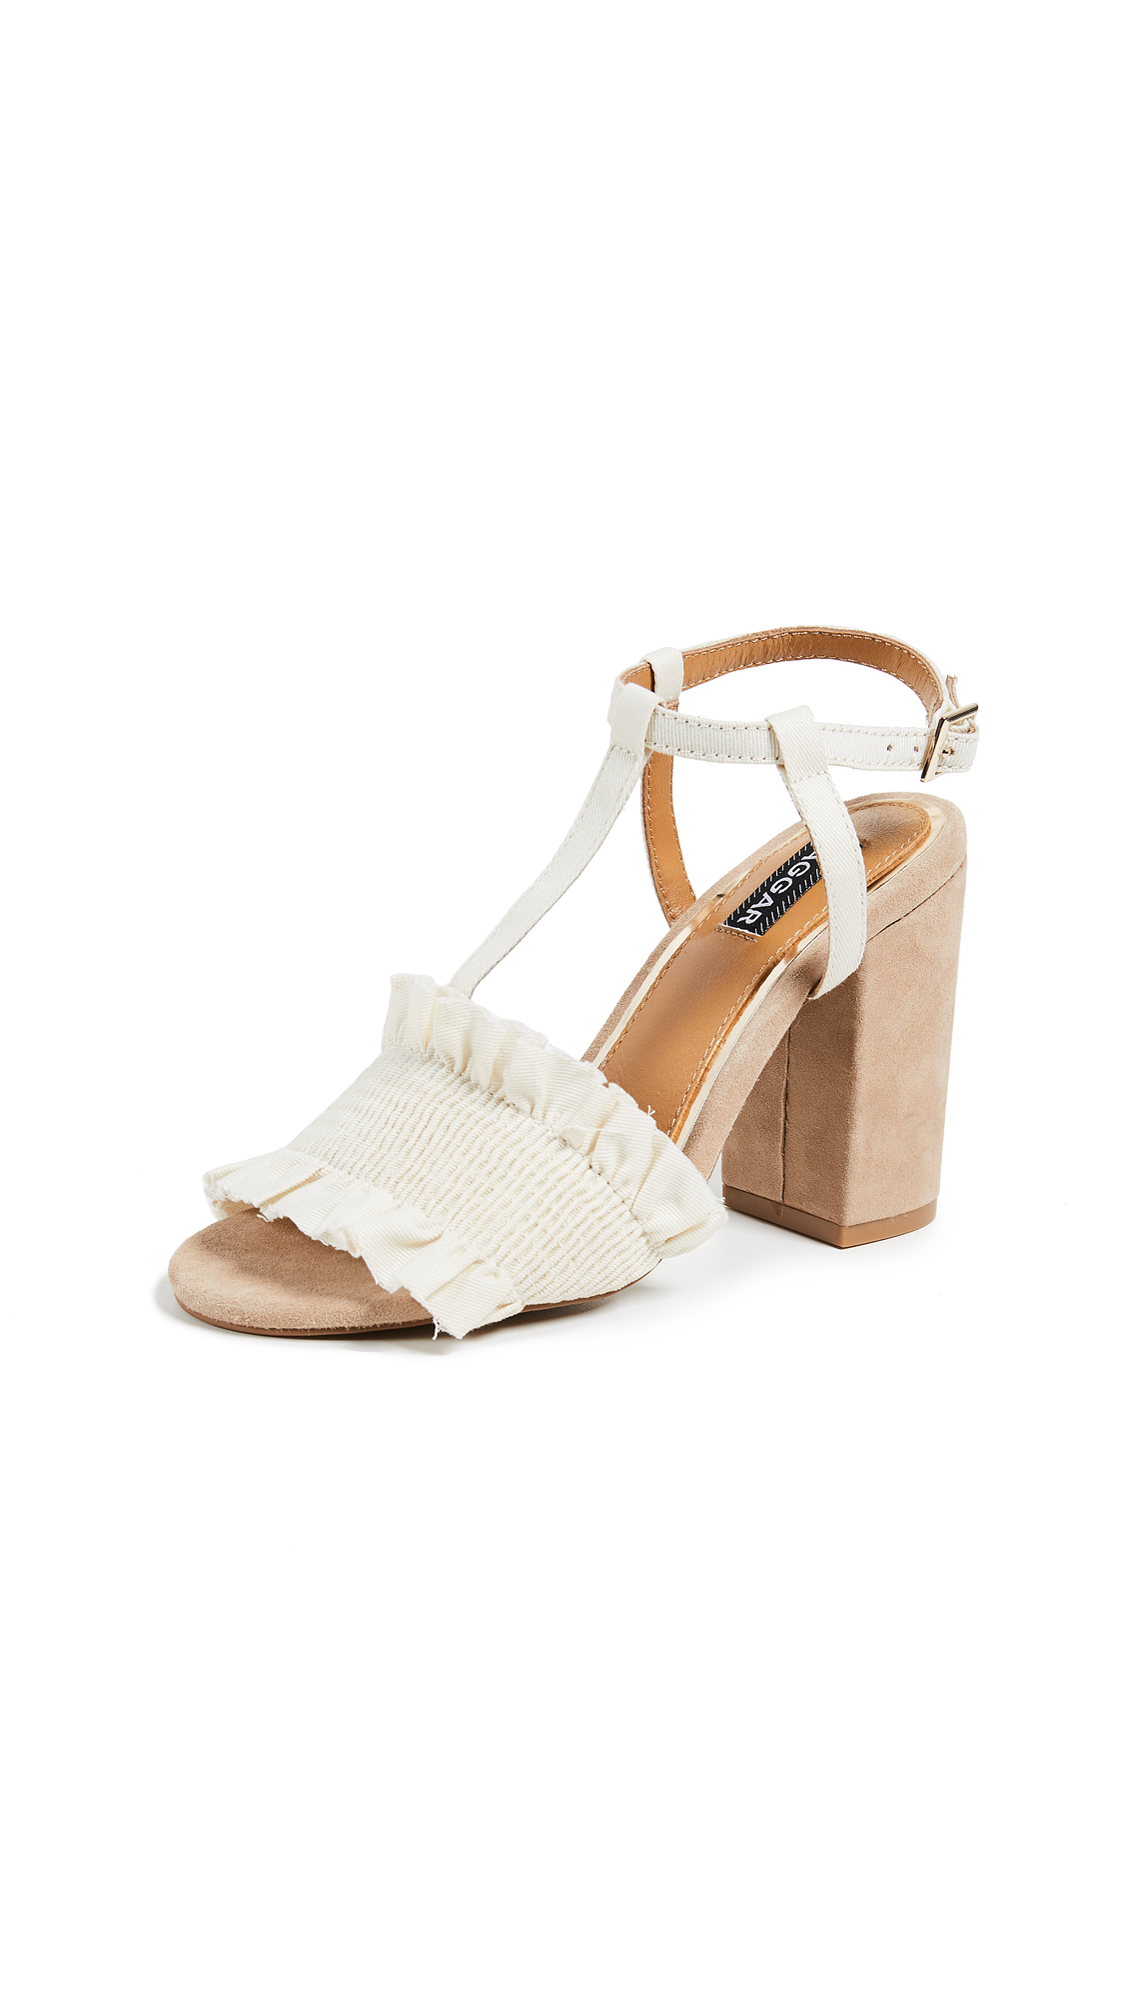 JAGGAR Step Up Block Heel Sandals - Oatmeal